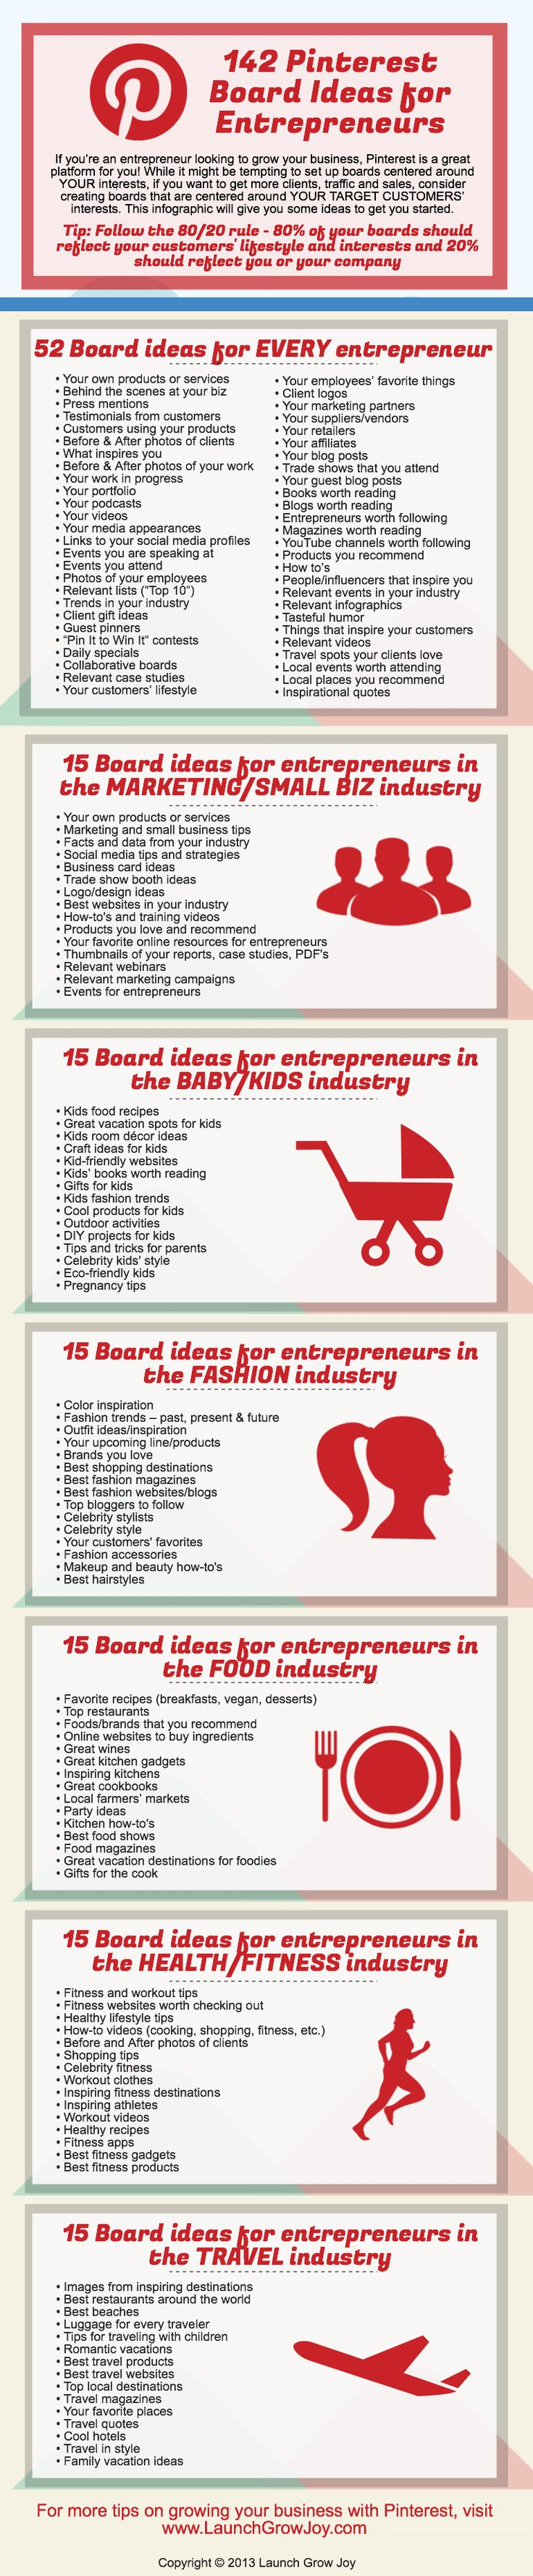 142 Pinterest board ideas for entrepreneurs, from Launch Grow Joy